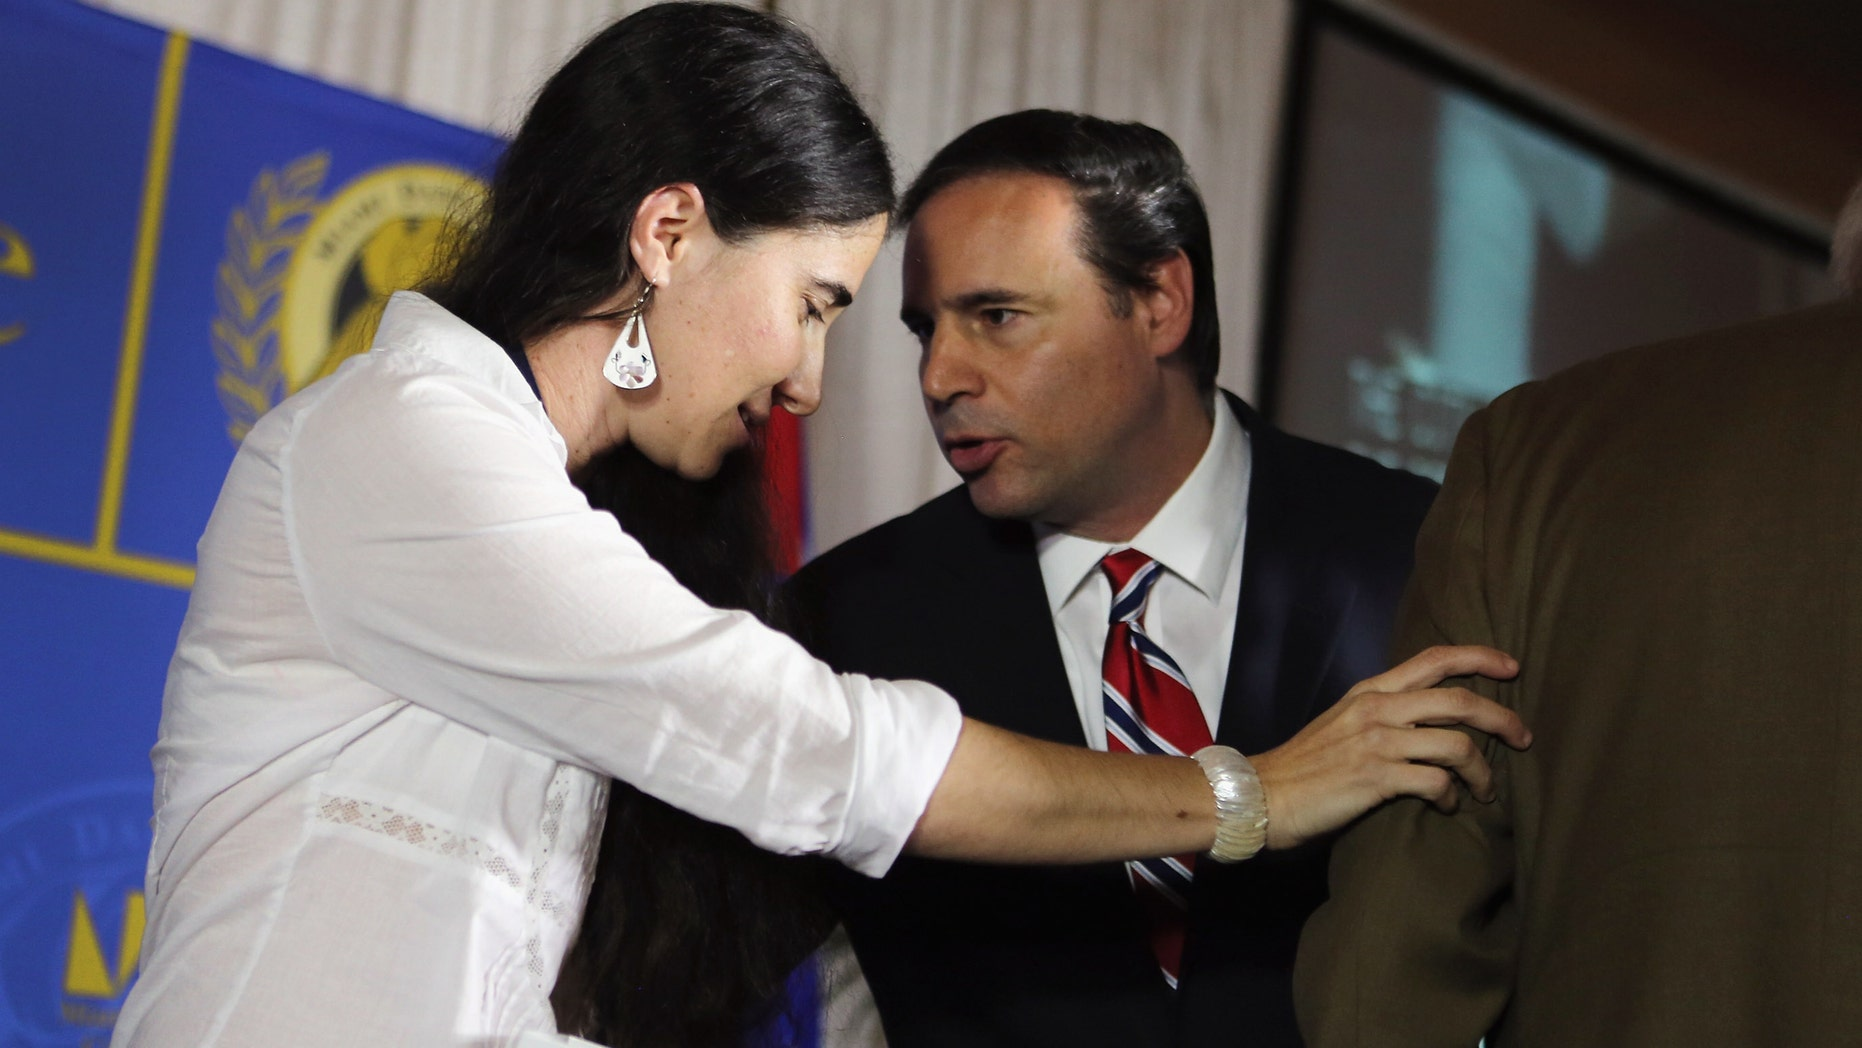 Yoani Sanchez and Miami City Commissioner Frank Carollo on April 1, 2013 in Miami, Florida.